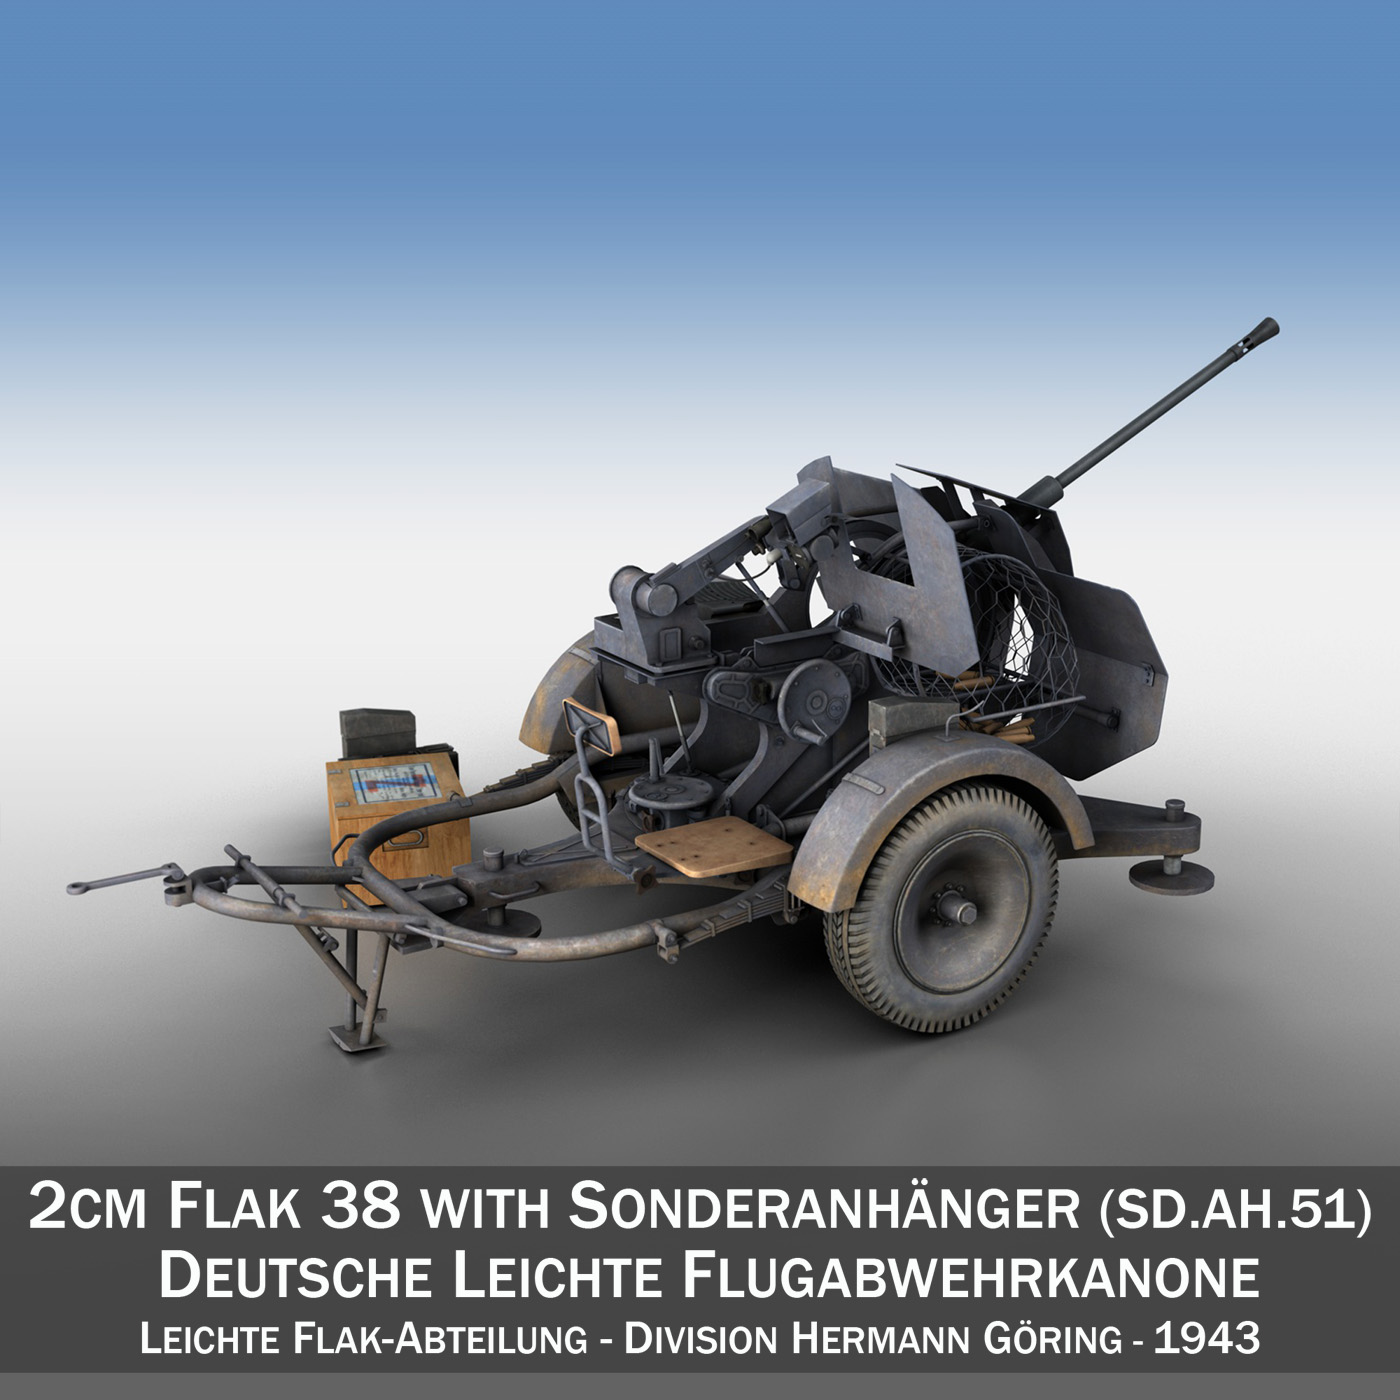 2cm flak 38 karo sd.ah 51 - trailer - model 3d 3ds fbx c4d kanggo 268991